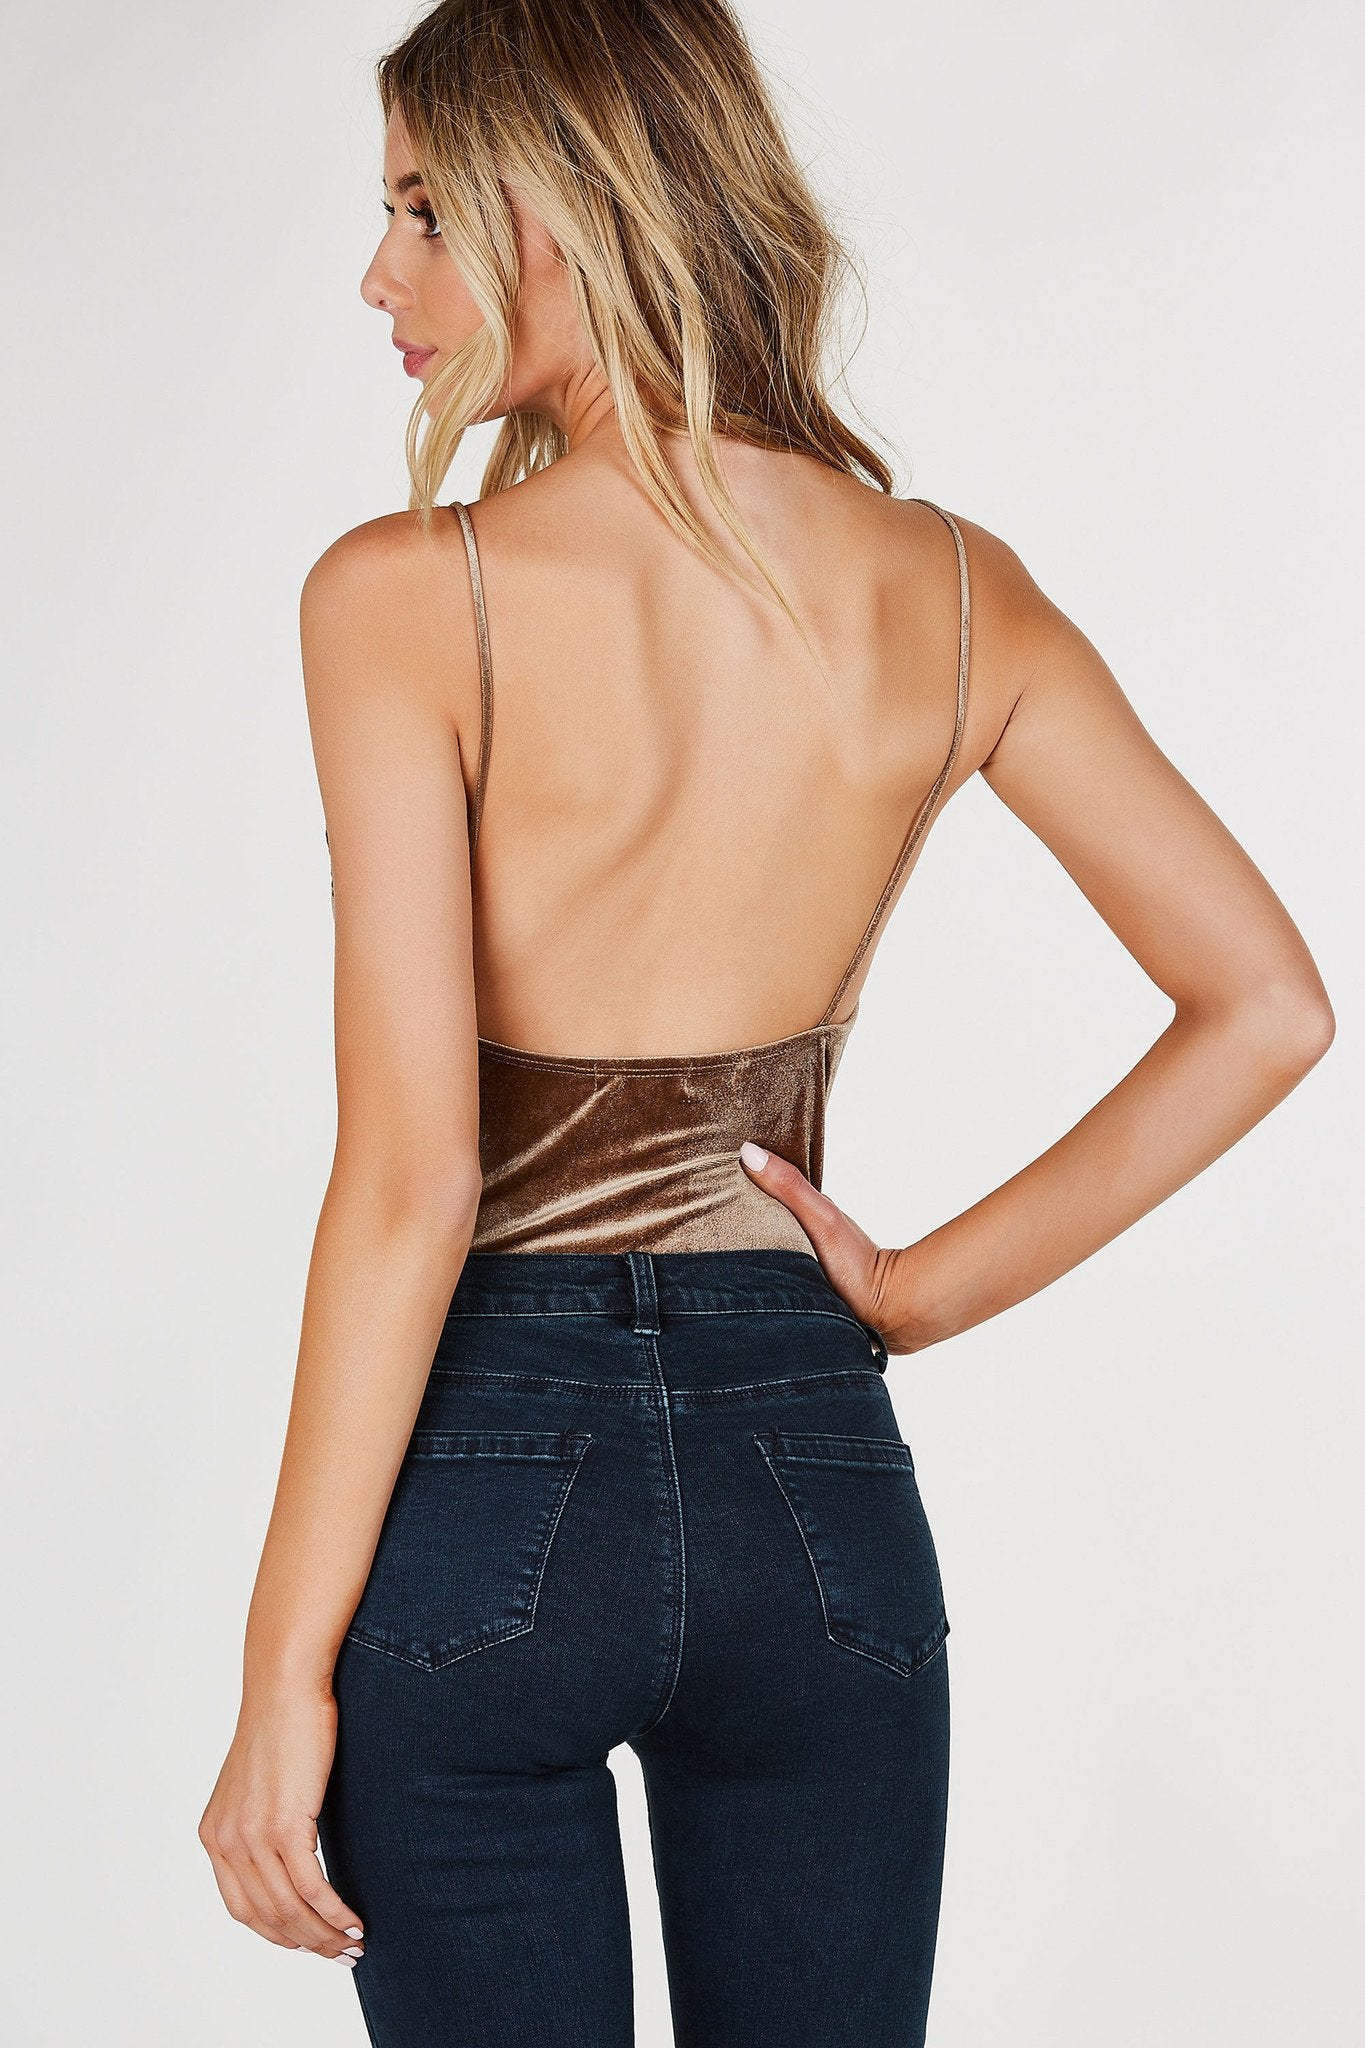 Soft V-neck cami bodysuit with lace trimming at top. Velvet finish with cheeky cut and snap button closure.